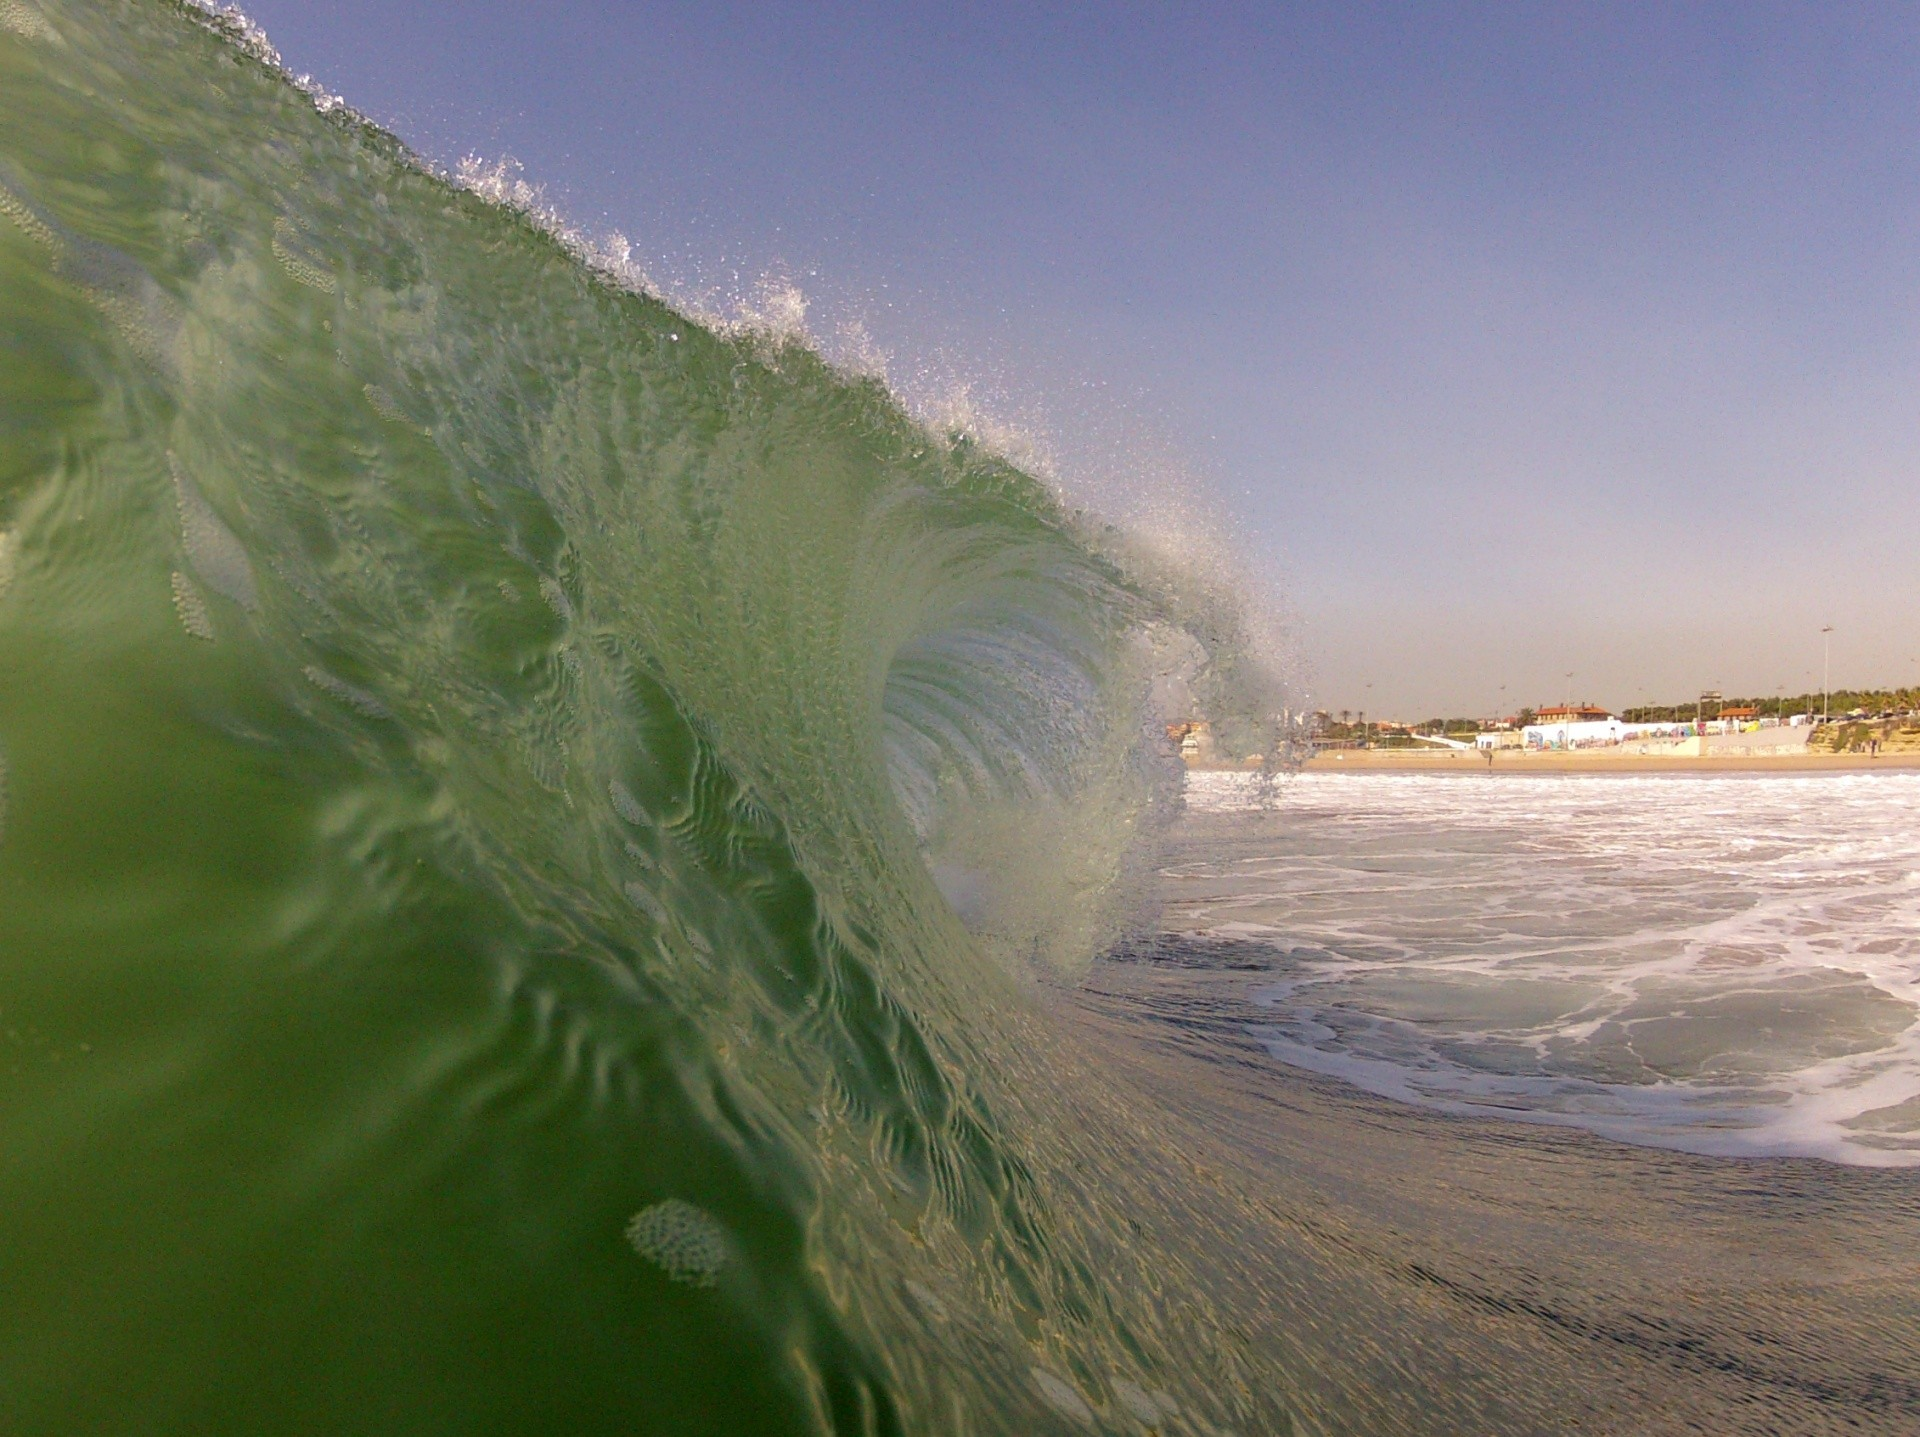 Mitch Holmes's photo of Carcavelos